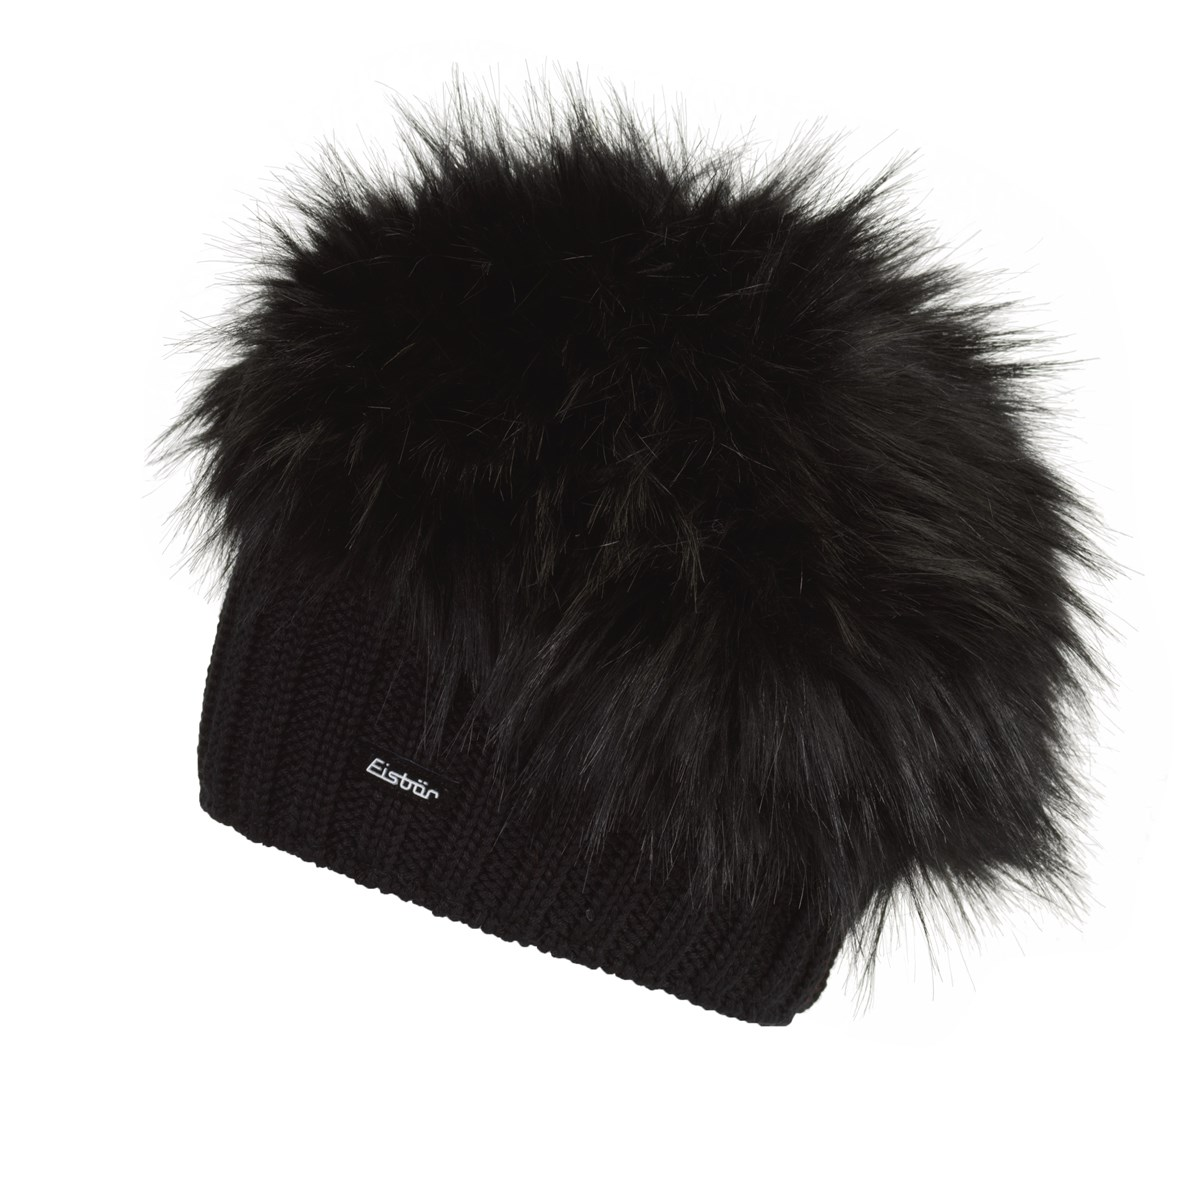 Eisbar Trapper Faux Fur Merino Hat Black. 0 (Be the first to add a review!) 99a9fe14e51b